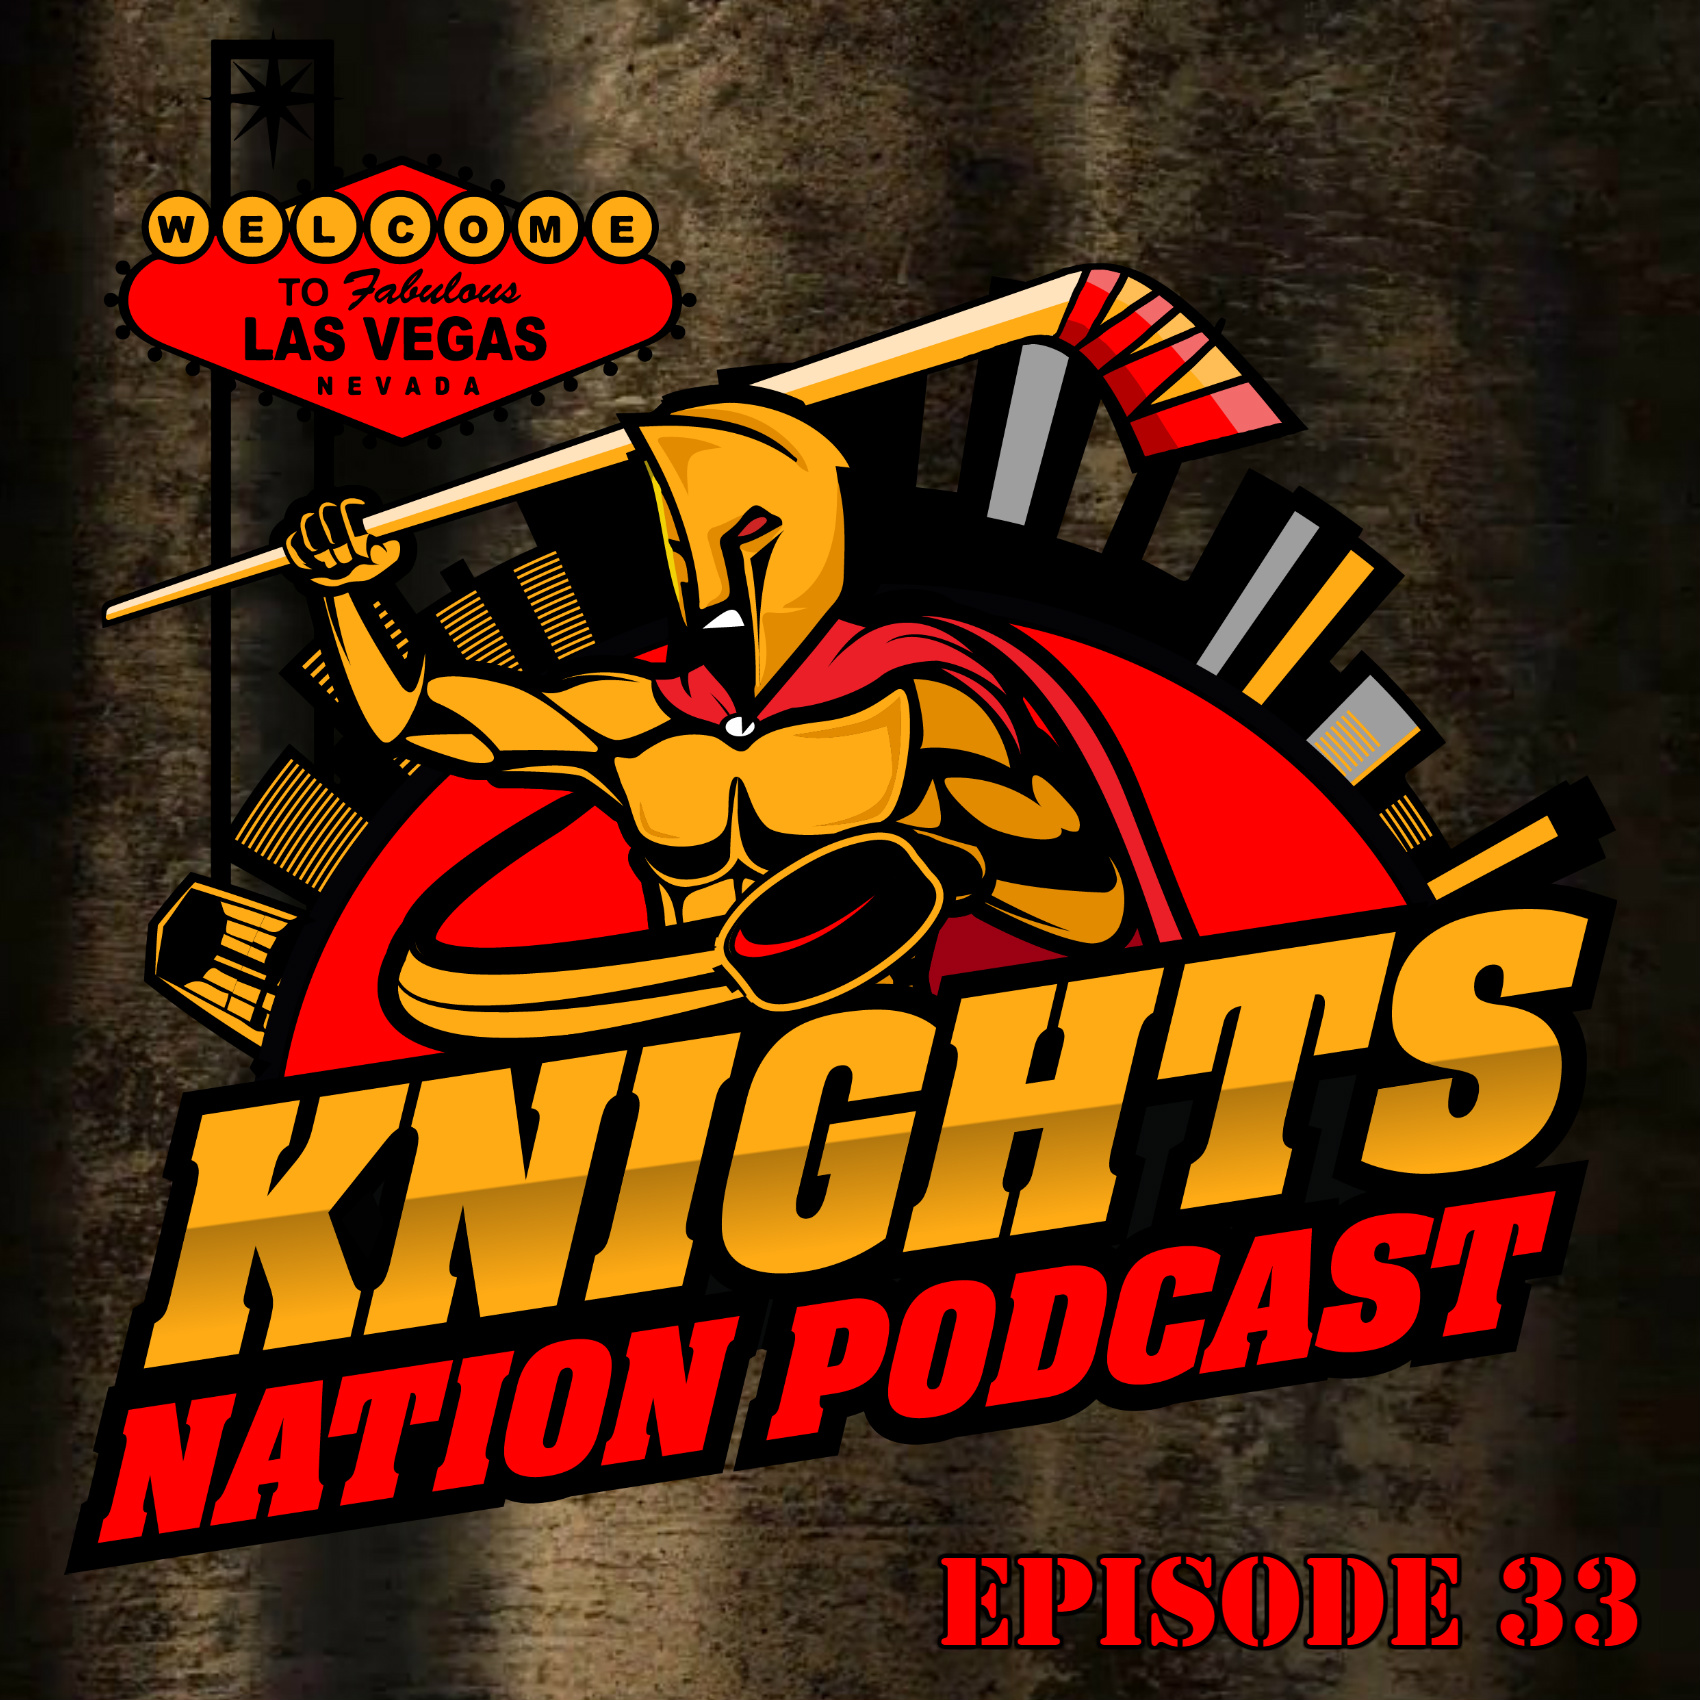 Episode 33: Welcome to the Stone Age-Vegas Golden Knights 4-0 since acquiring Mark Stone